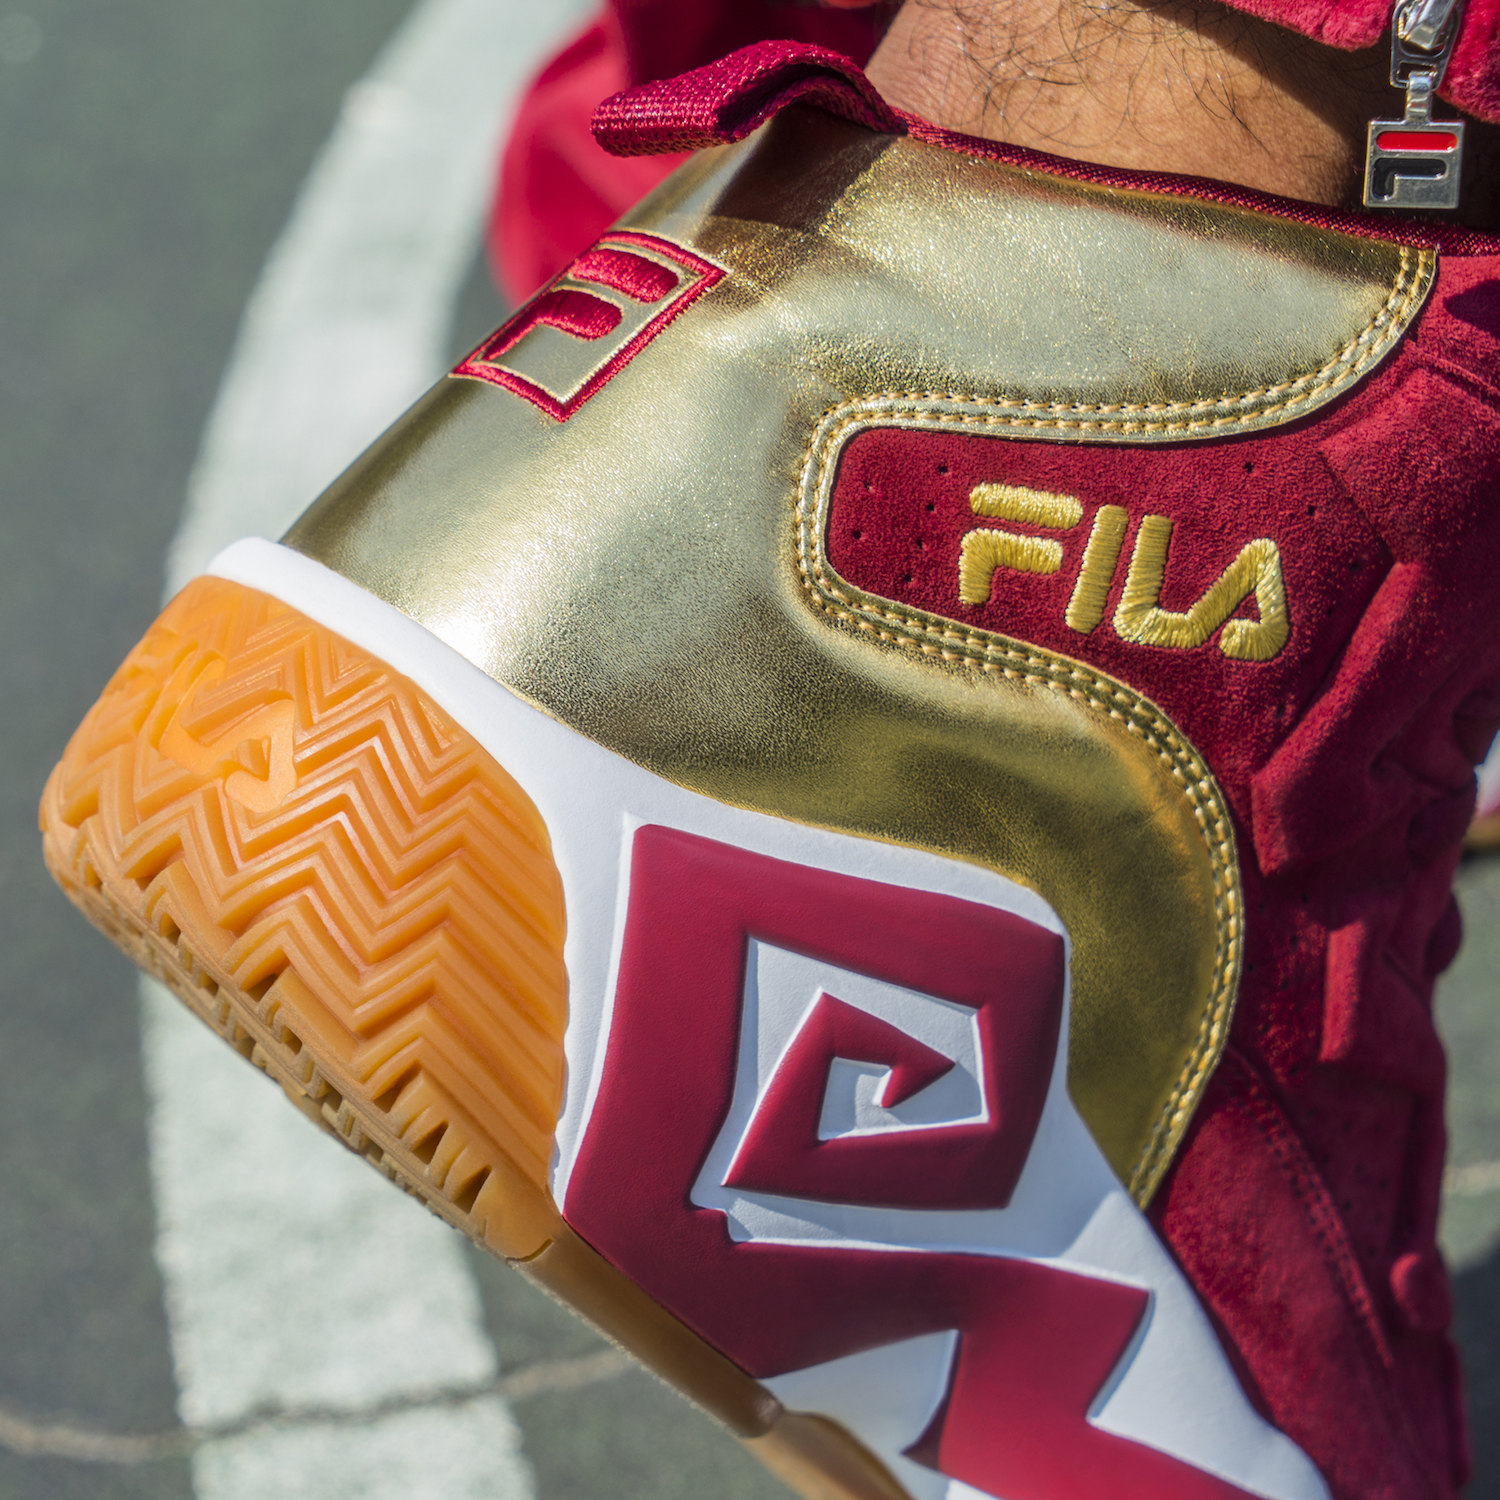 FILA MB royal beginnings 3